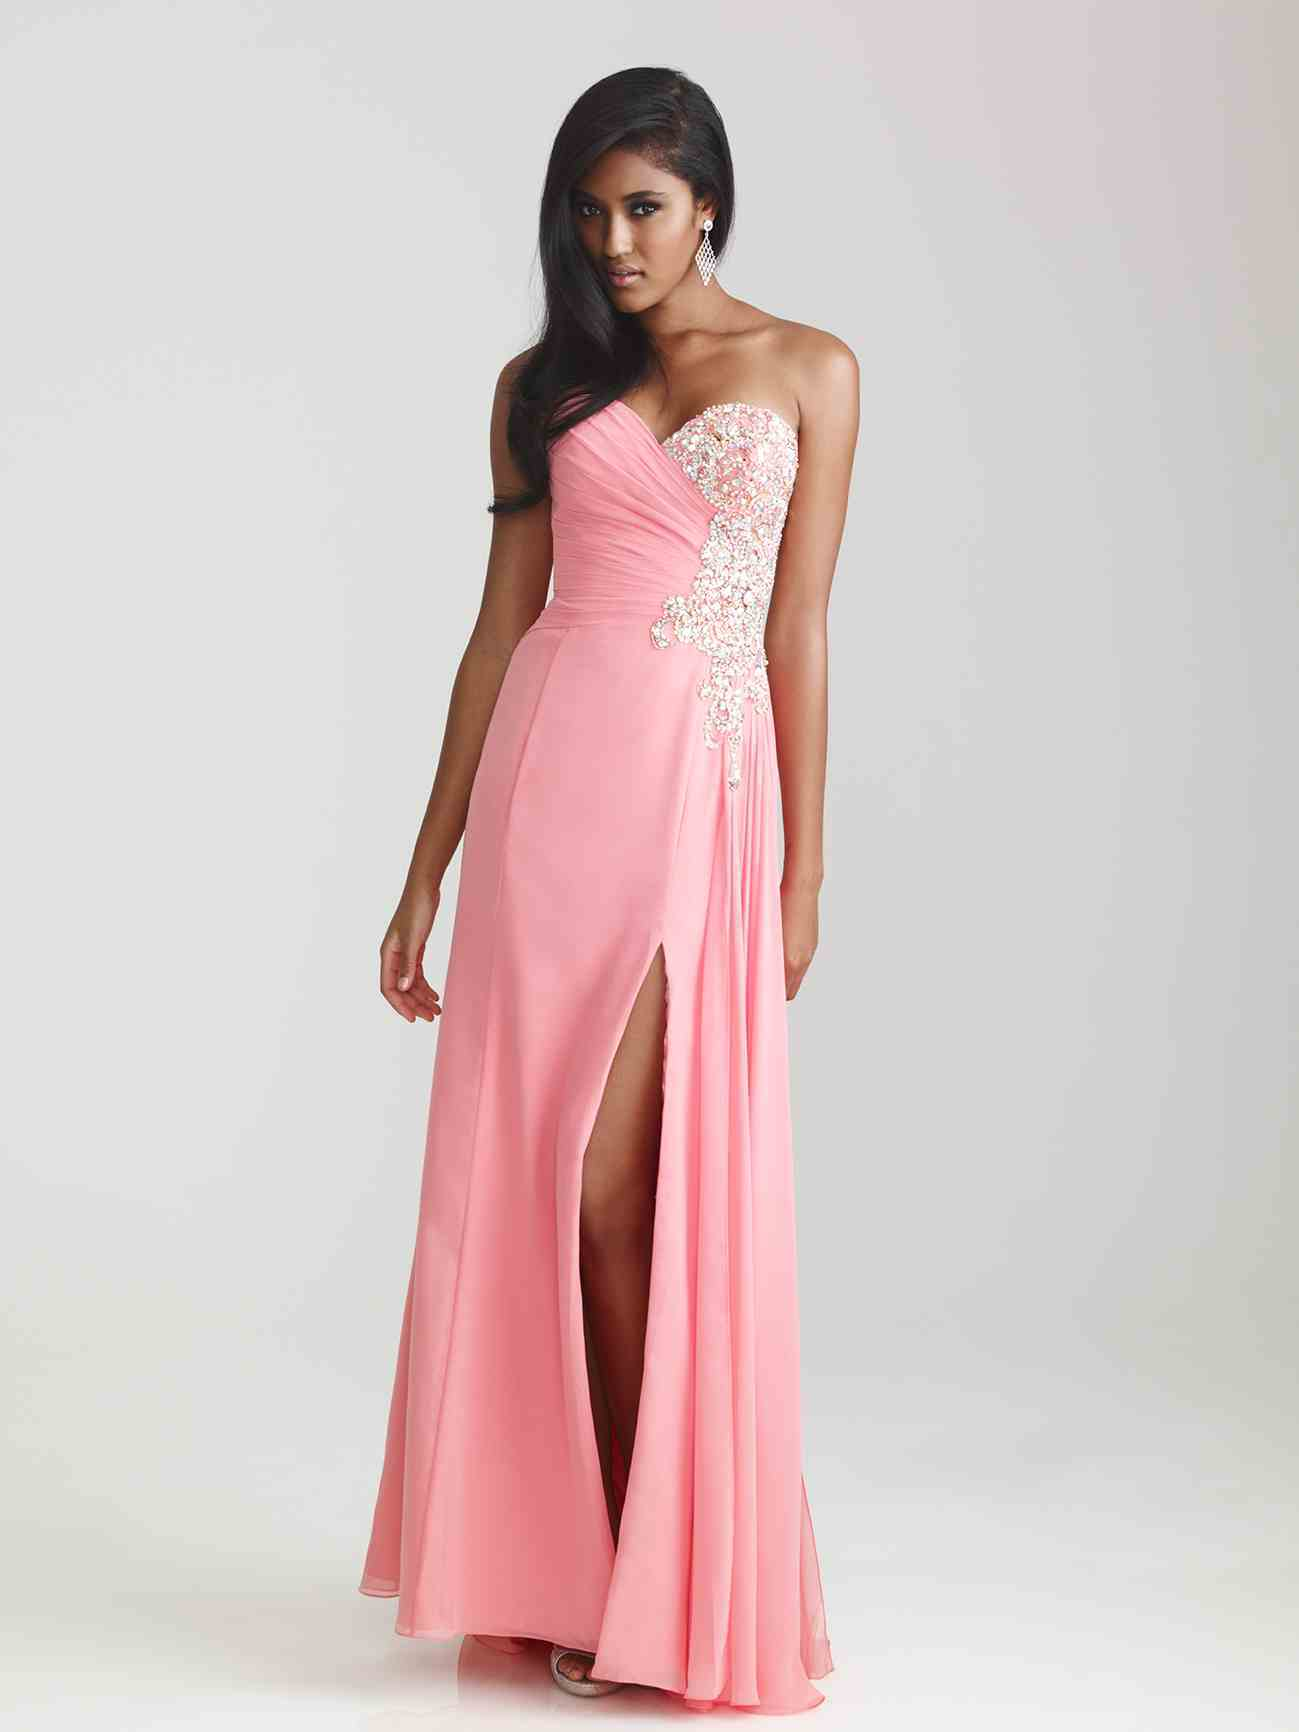 110 Black Girls Prom Outfits-20 Ideas What to Wear for Prom